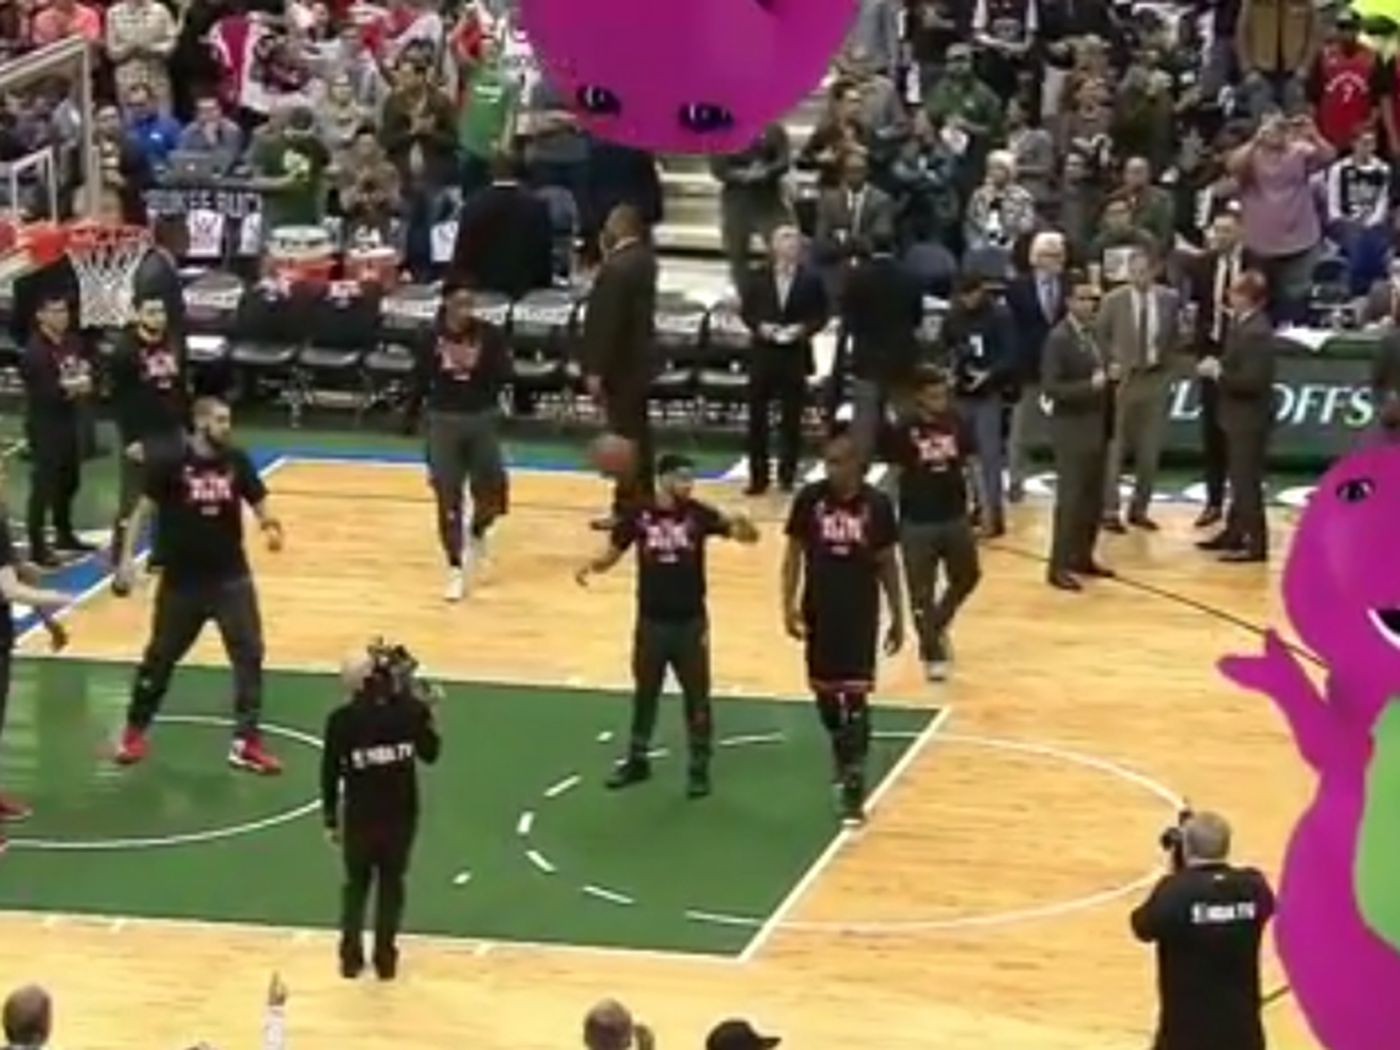 62cdc4173e6 Bucks play Barney theme song during Raptors introductions - SBNation.com